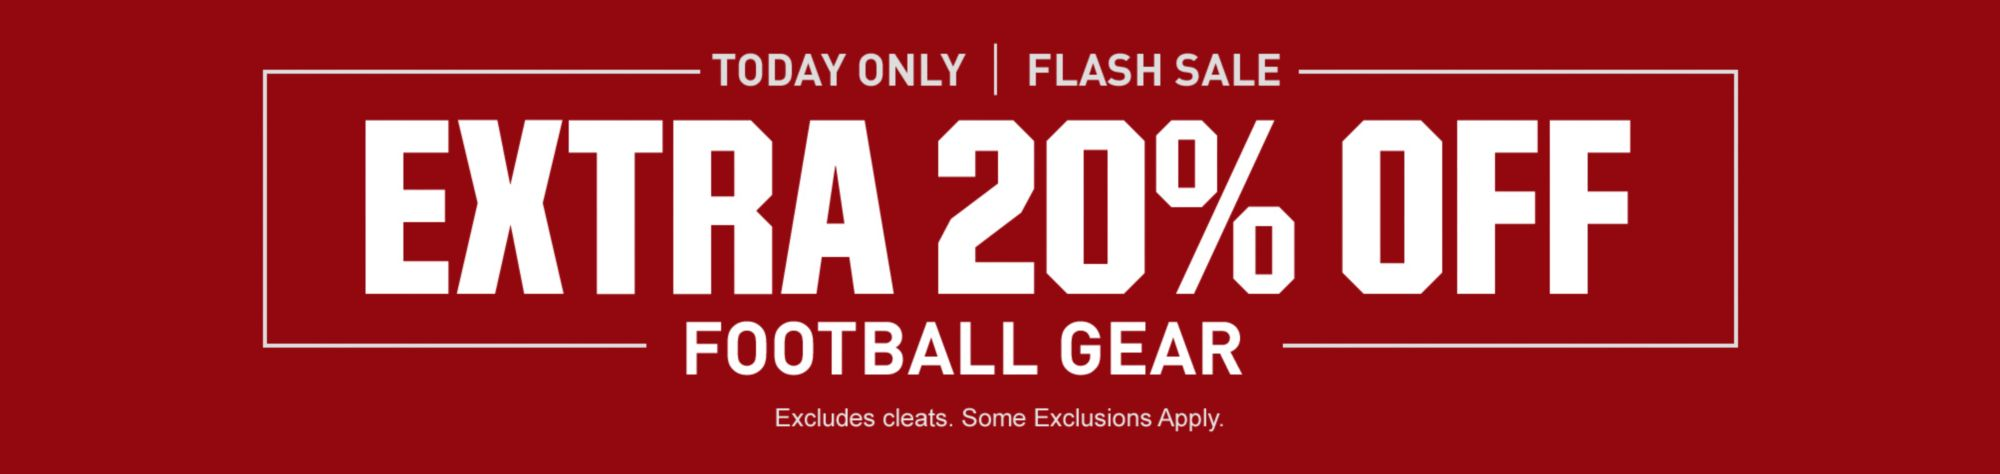 Football Flash Sale - Shop Now